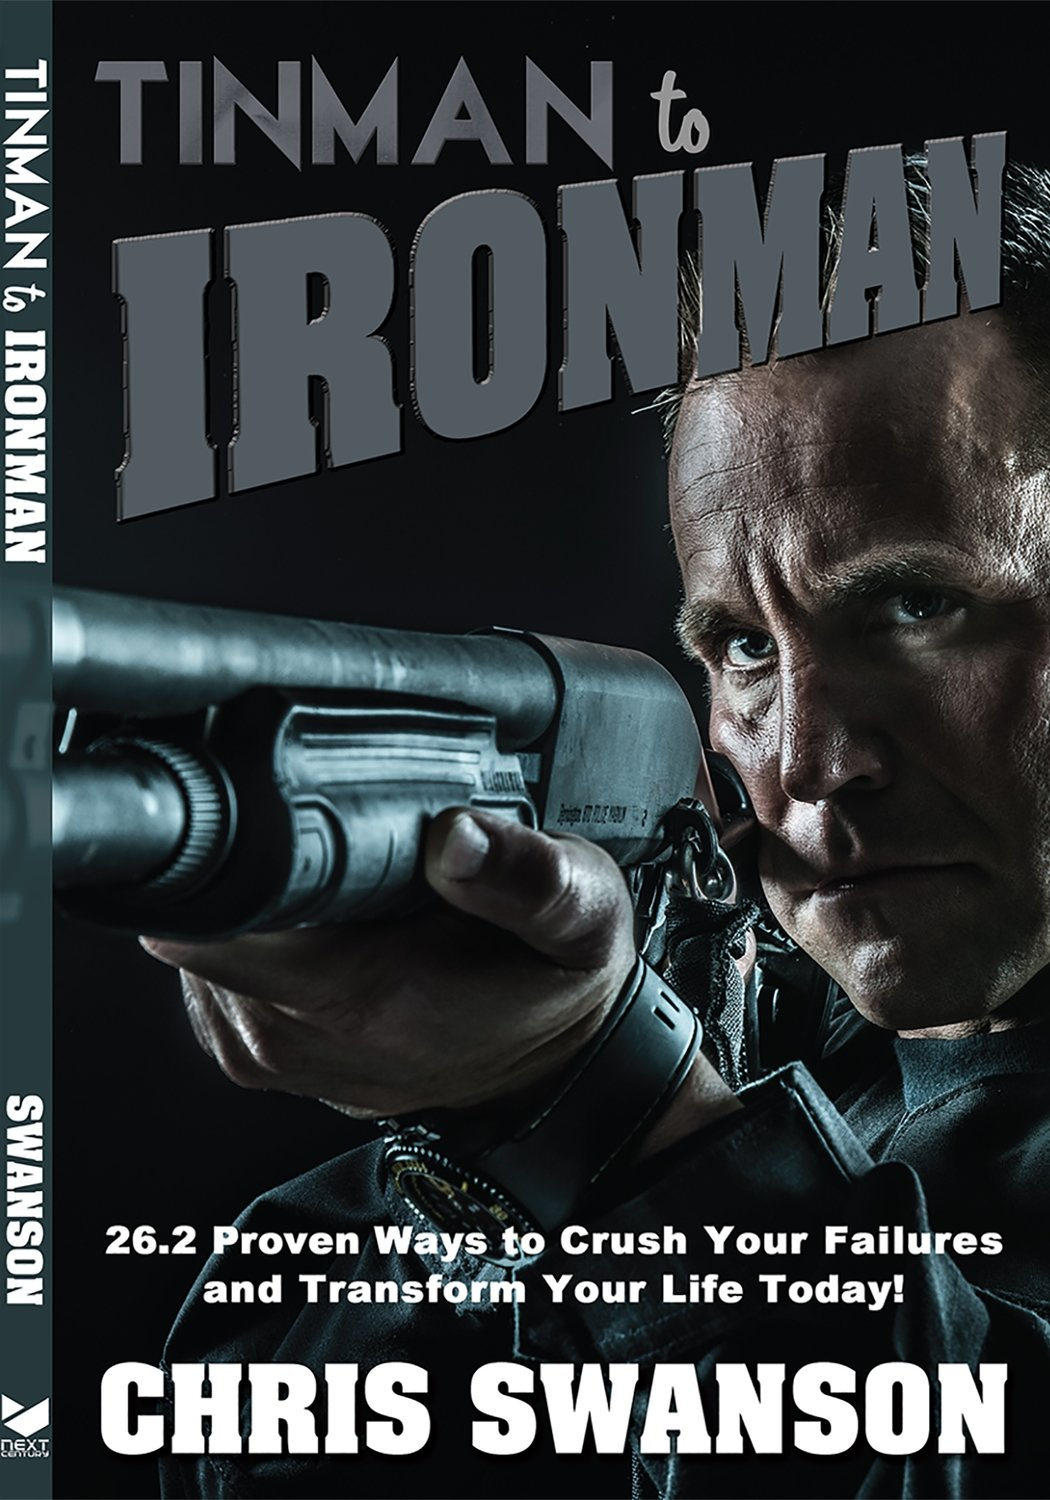 Tinman To Ironman Book